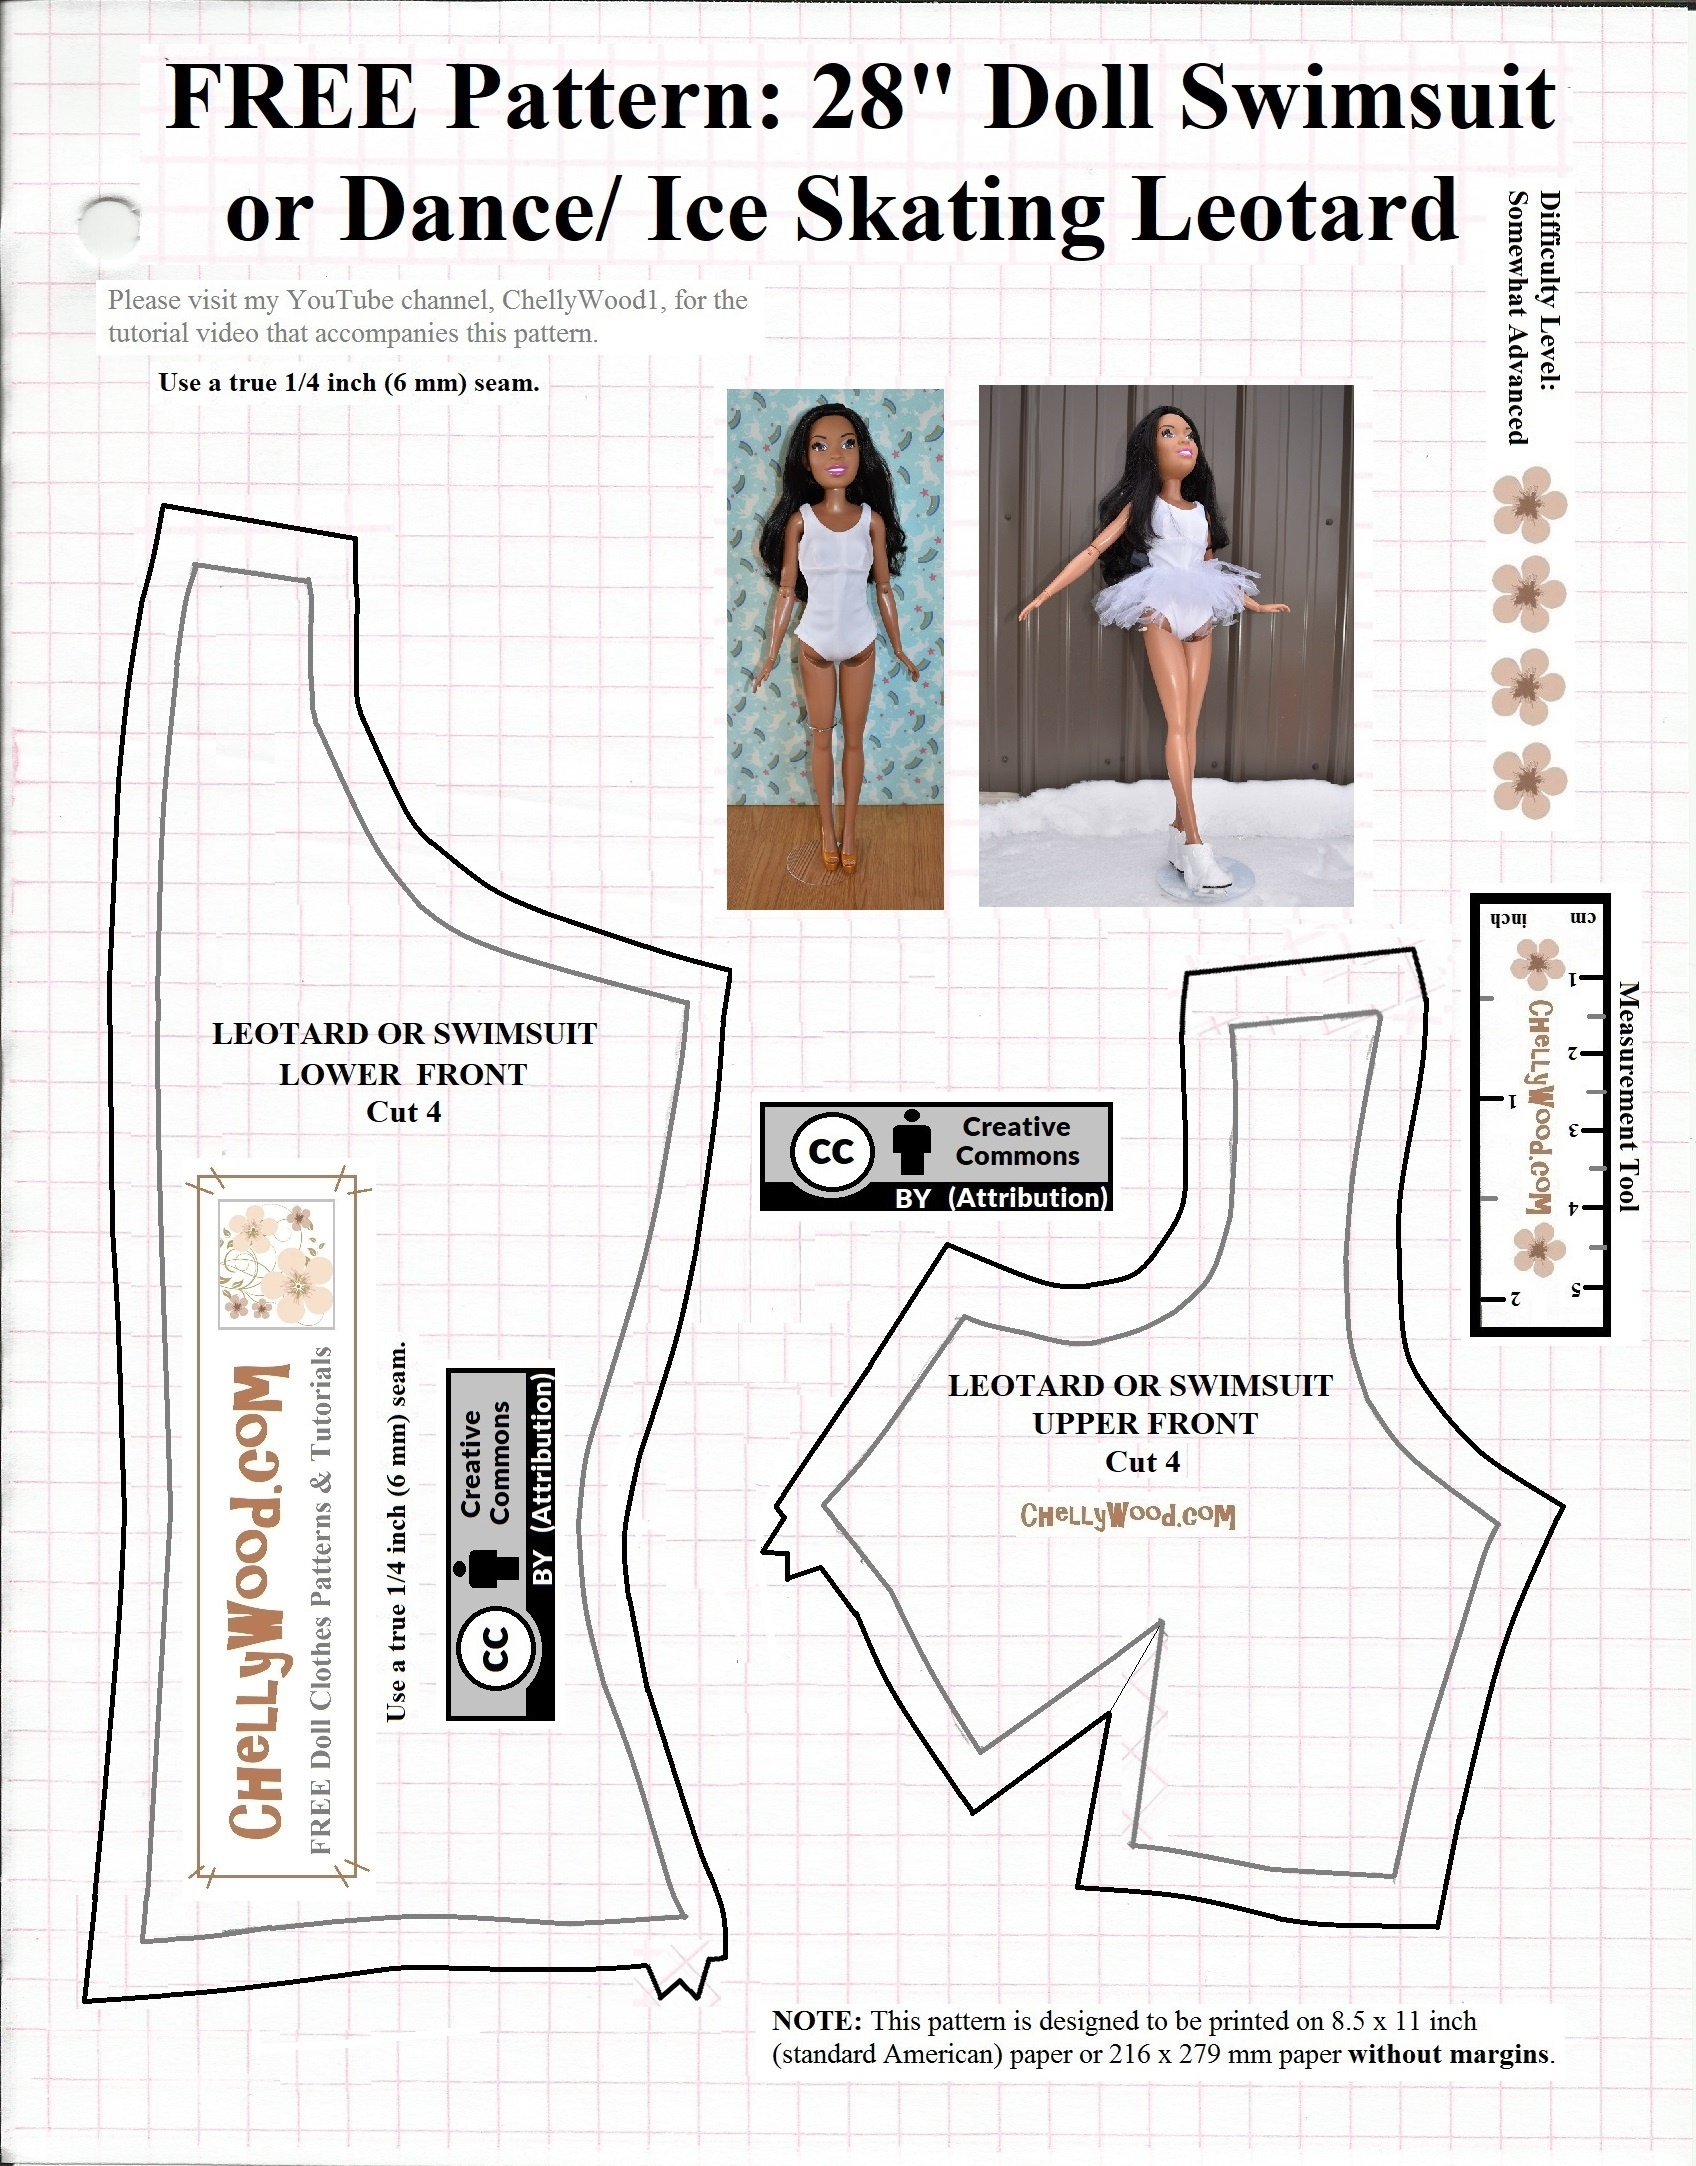 Leotard Or Swimsuit Front Free Printable Pattern B For 28 Inch - Free Printable Leotard Pattern